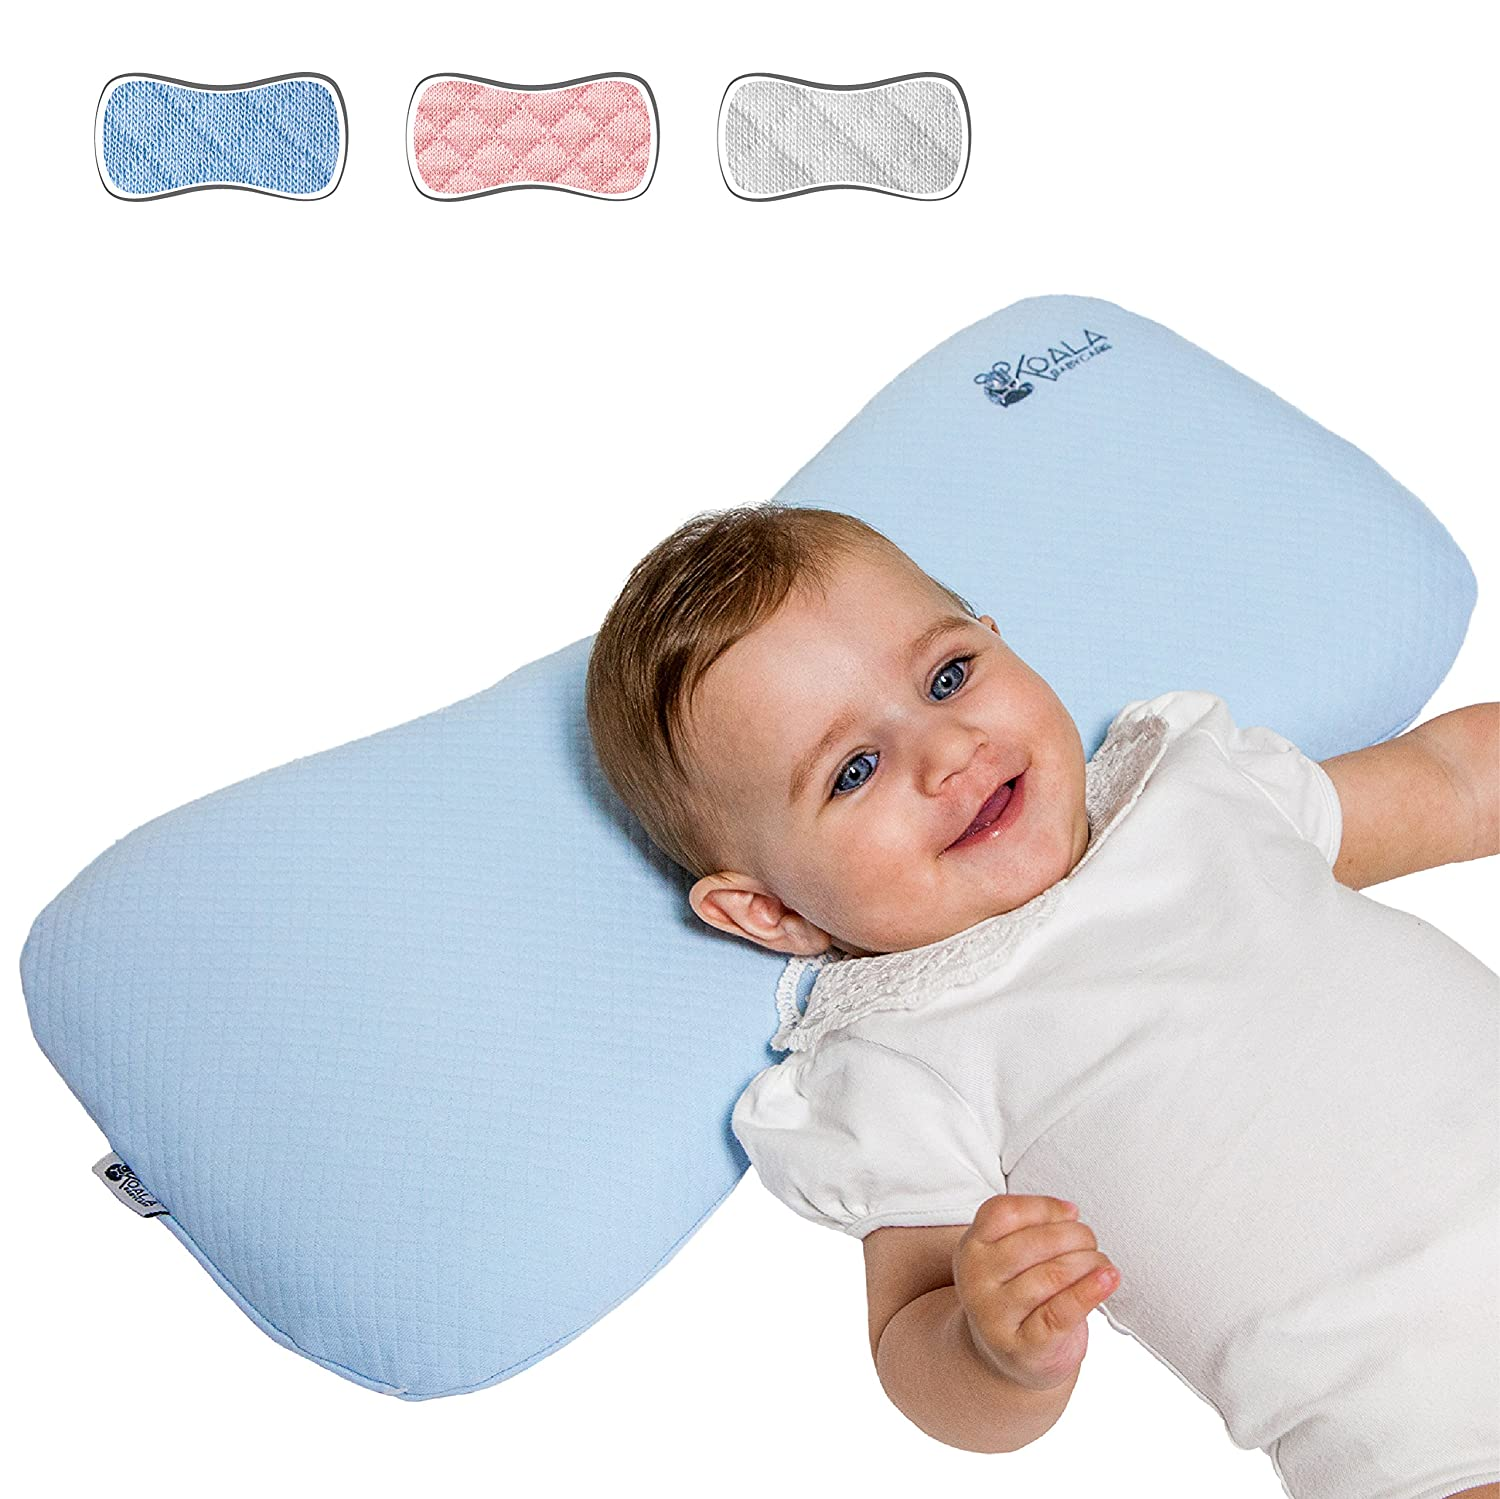 Head Care Orthopedic Cushion for infants from 0-36 months with two replacement covers, the Pillow prevents / heals plagiocephaly and flat head in memory foam Anti-suffocation - KoalaBabycare® - Blue - Maxi Koala Babycare